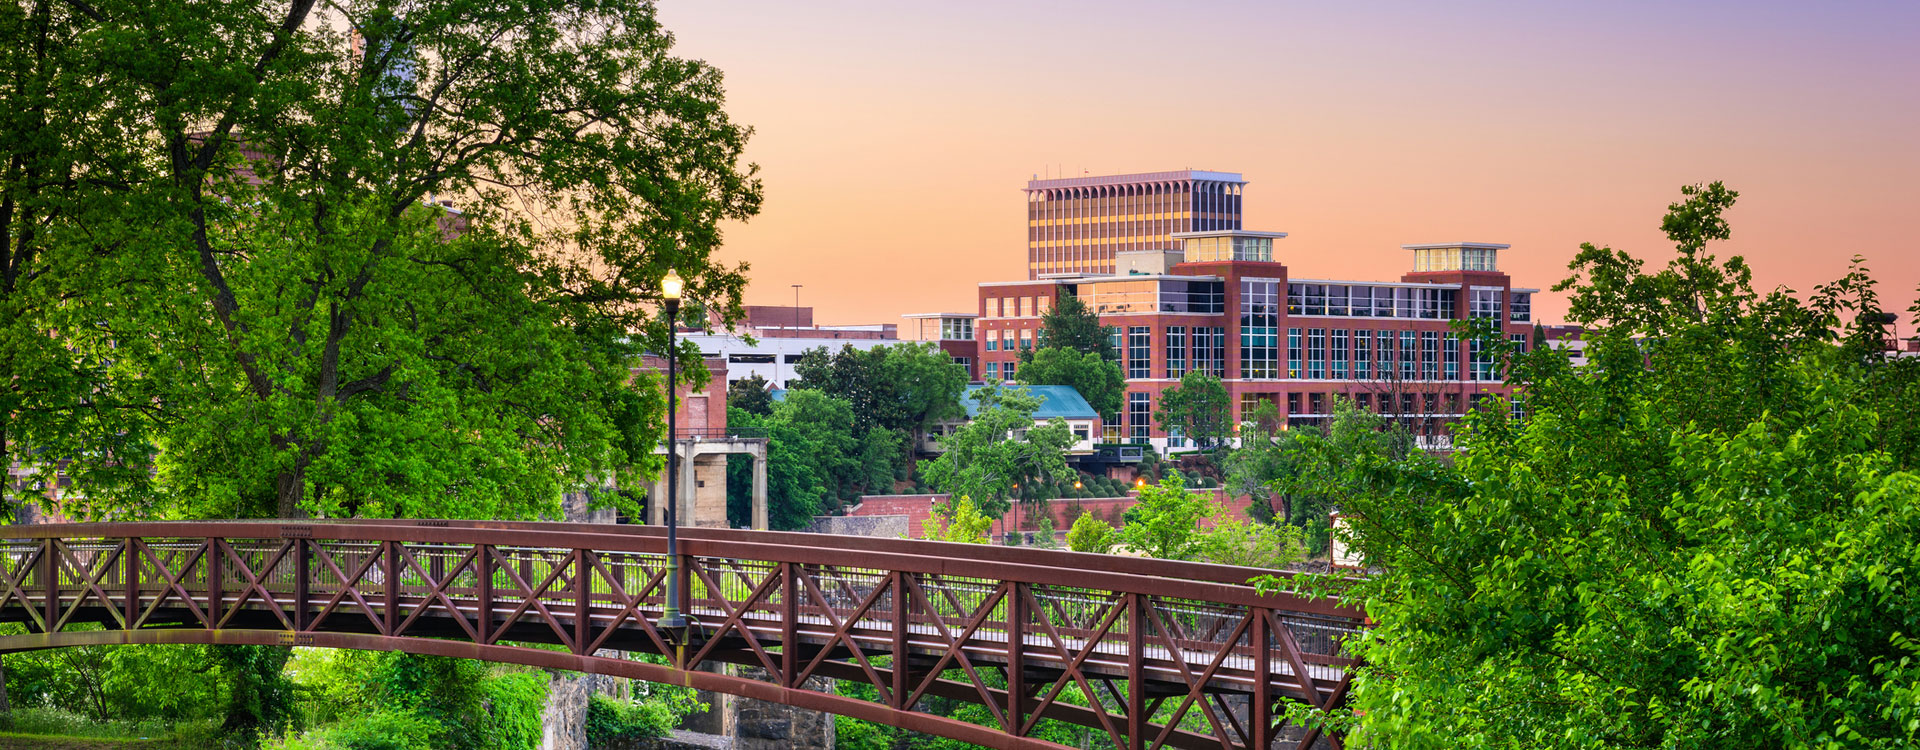 image of Columbus, GA Riverwalk from Phenix City, AL